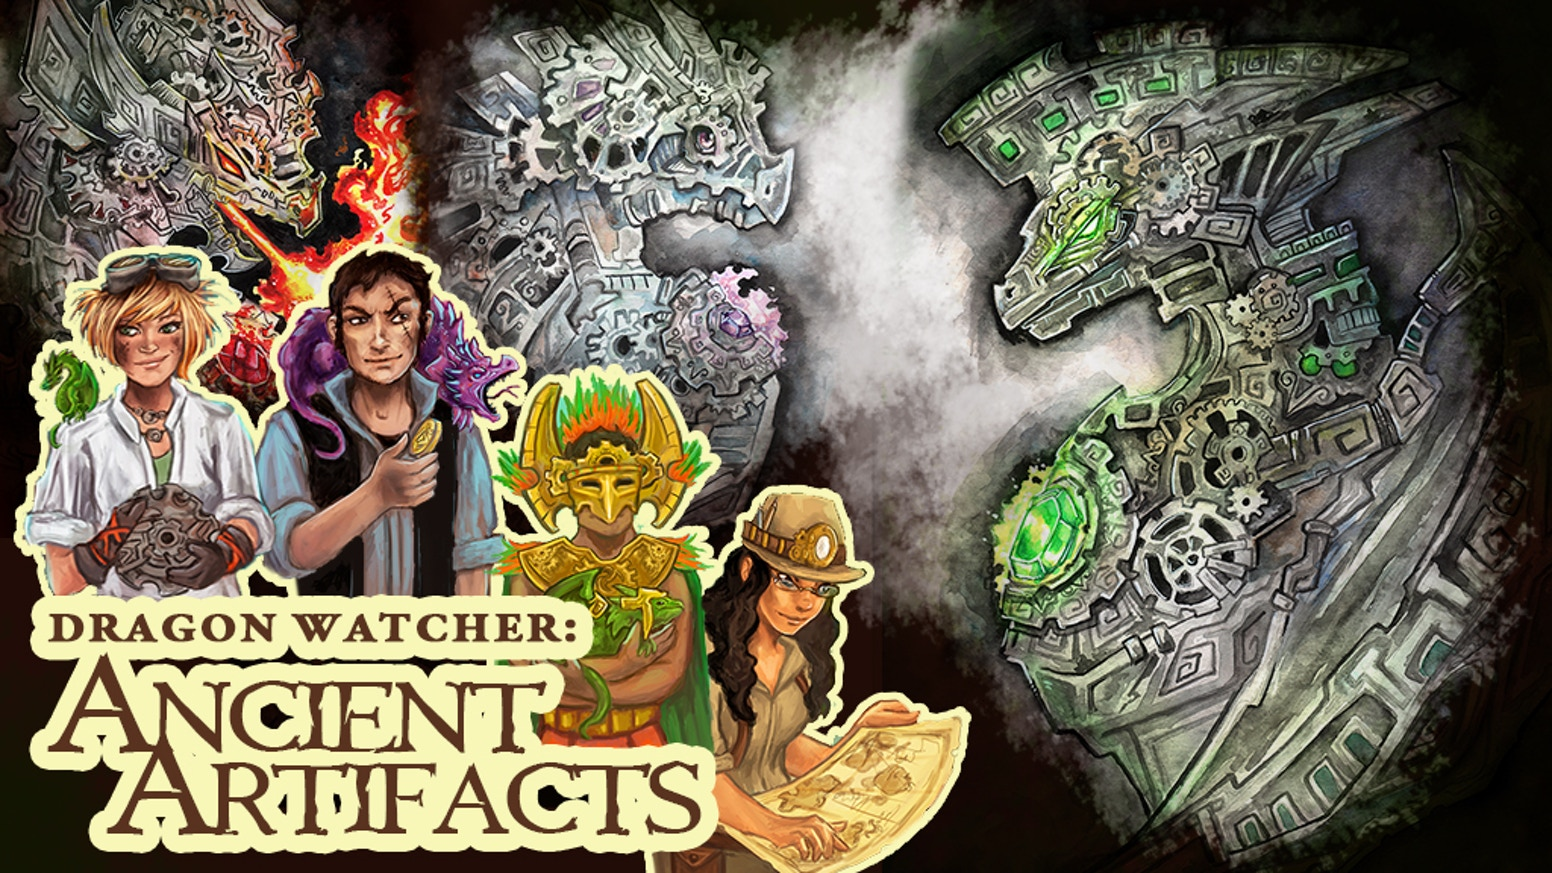 Become a Dragon Watcher with this strategy and collection card game! Discover ancient clockwork dragons and artifacts.